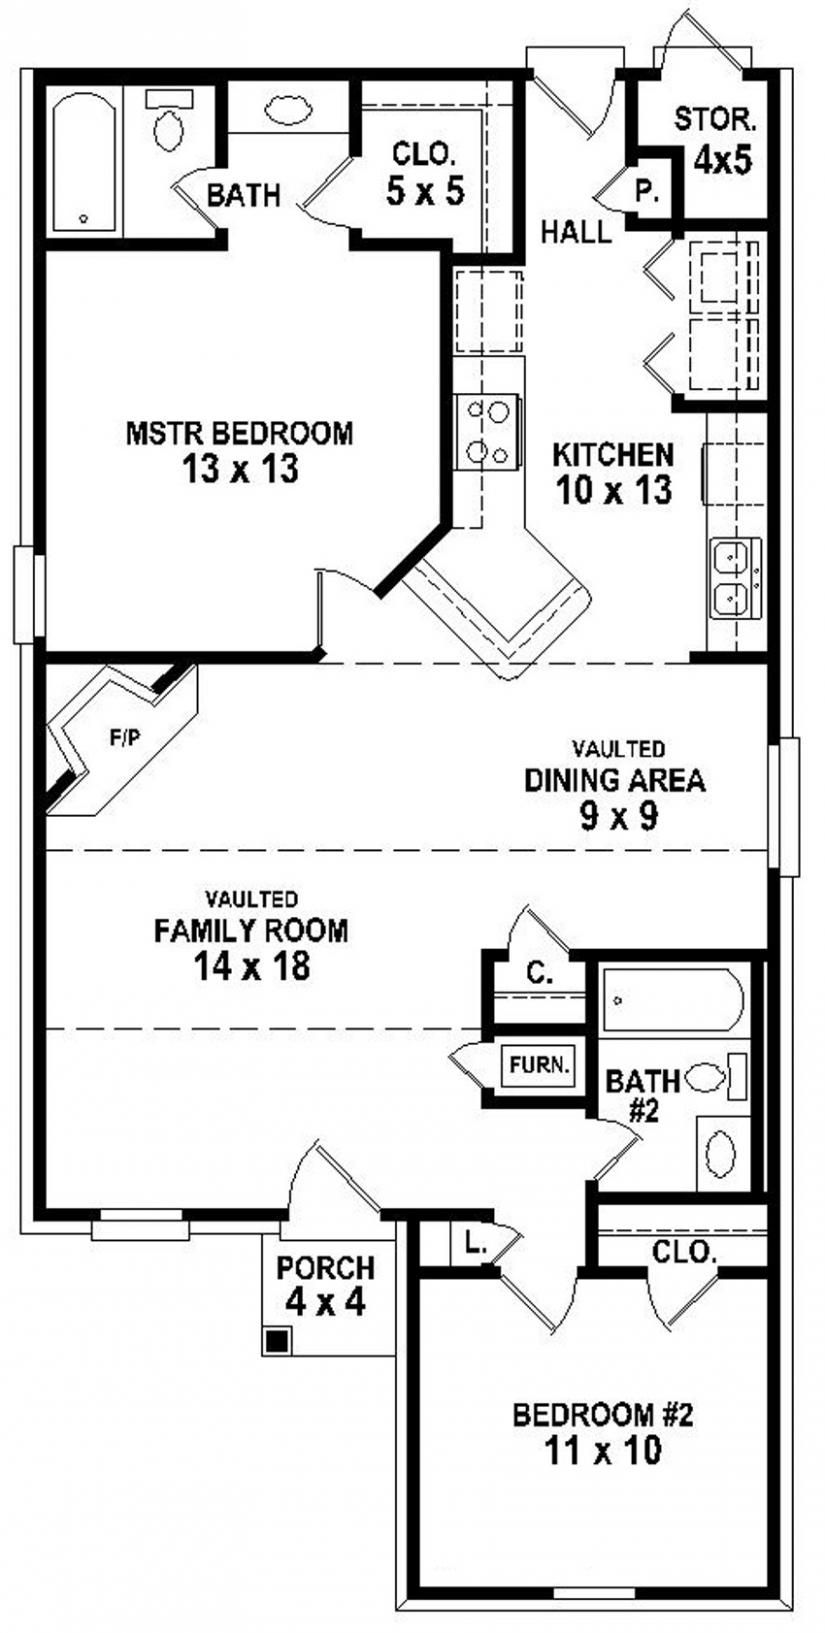 654334 Simple 2 Bedroom 2 Bath House Plan House Plans